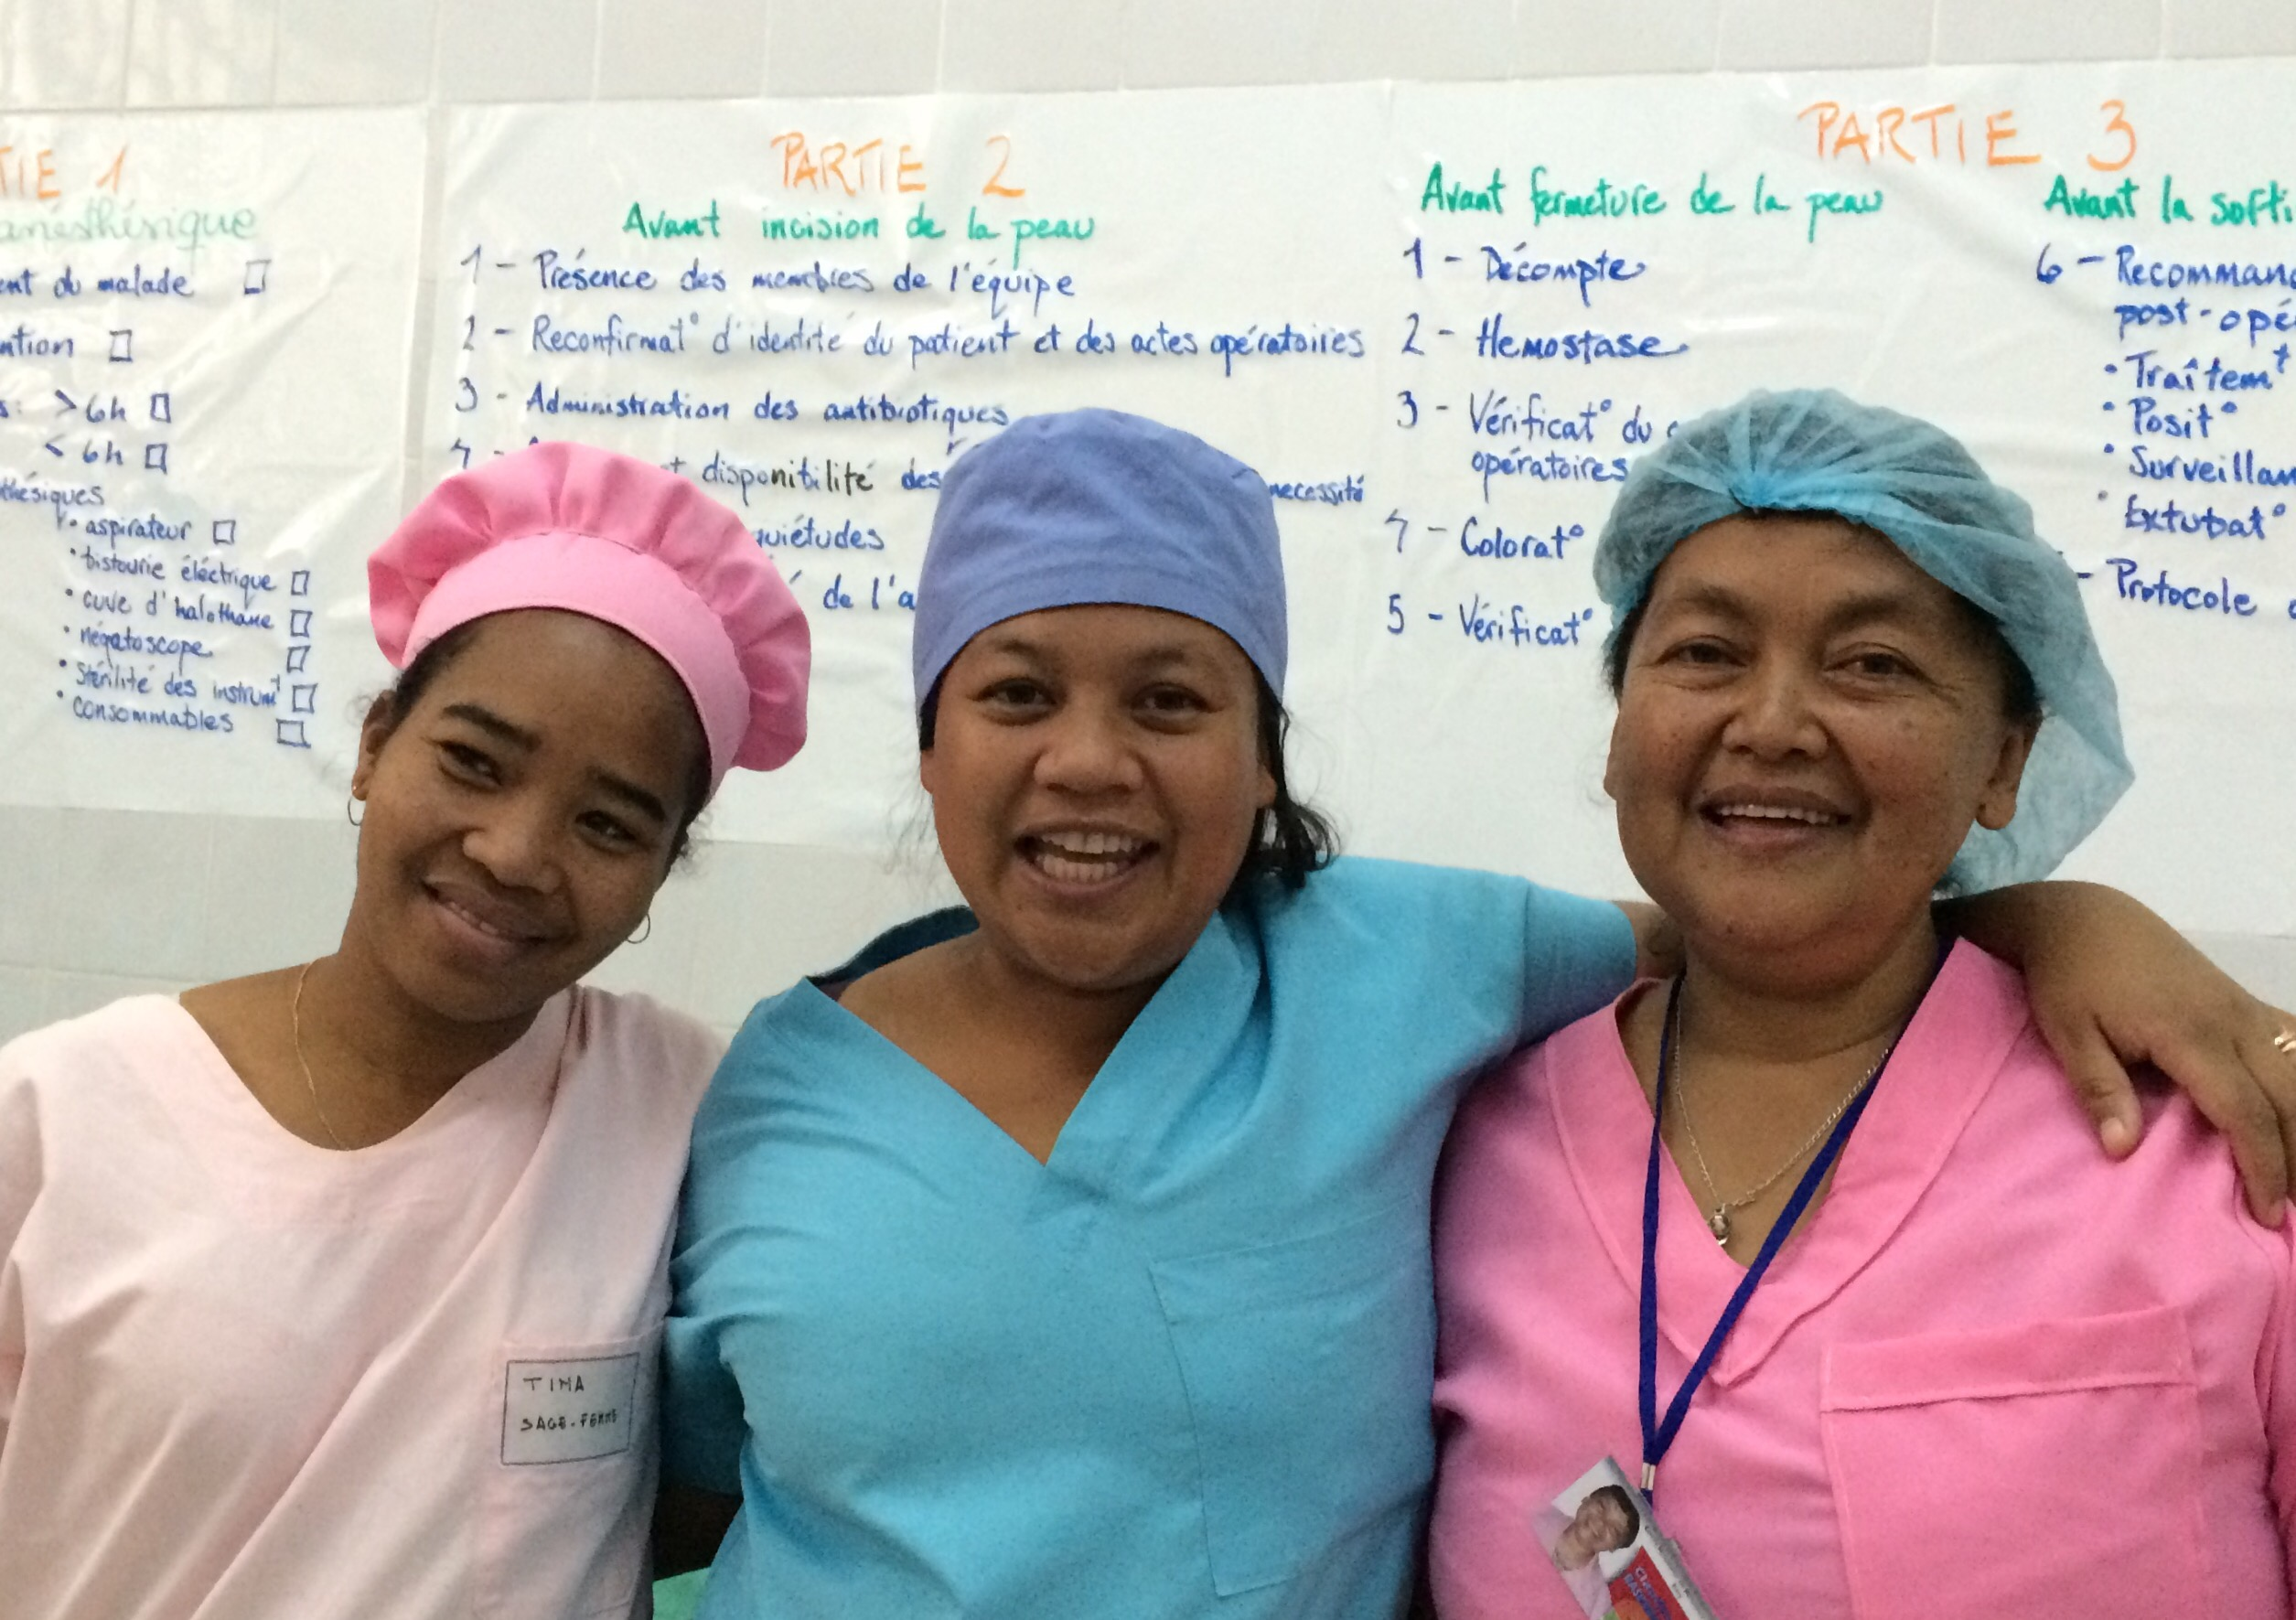 uncategorized lindenbaxter these hospital teams often act as referral centers for very large populations approximately 2 million in the case of last week so the opportunity to work